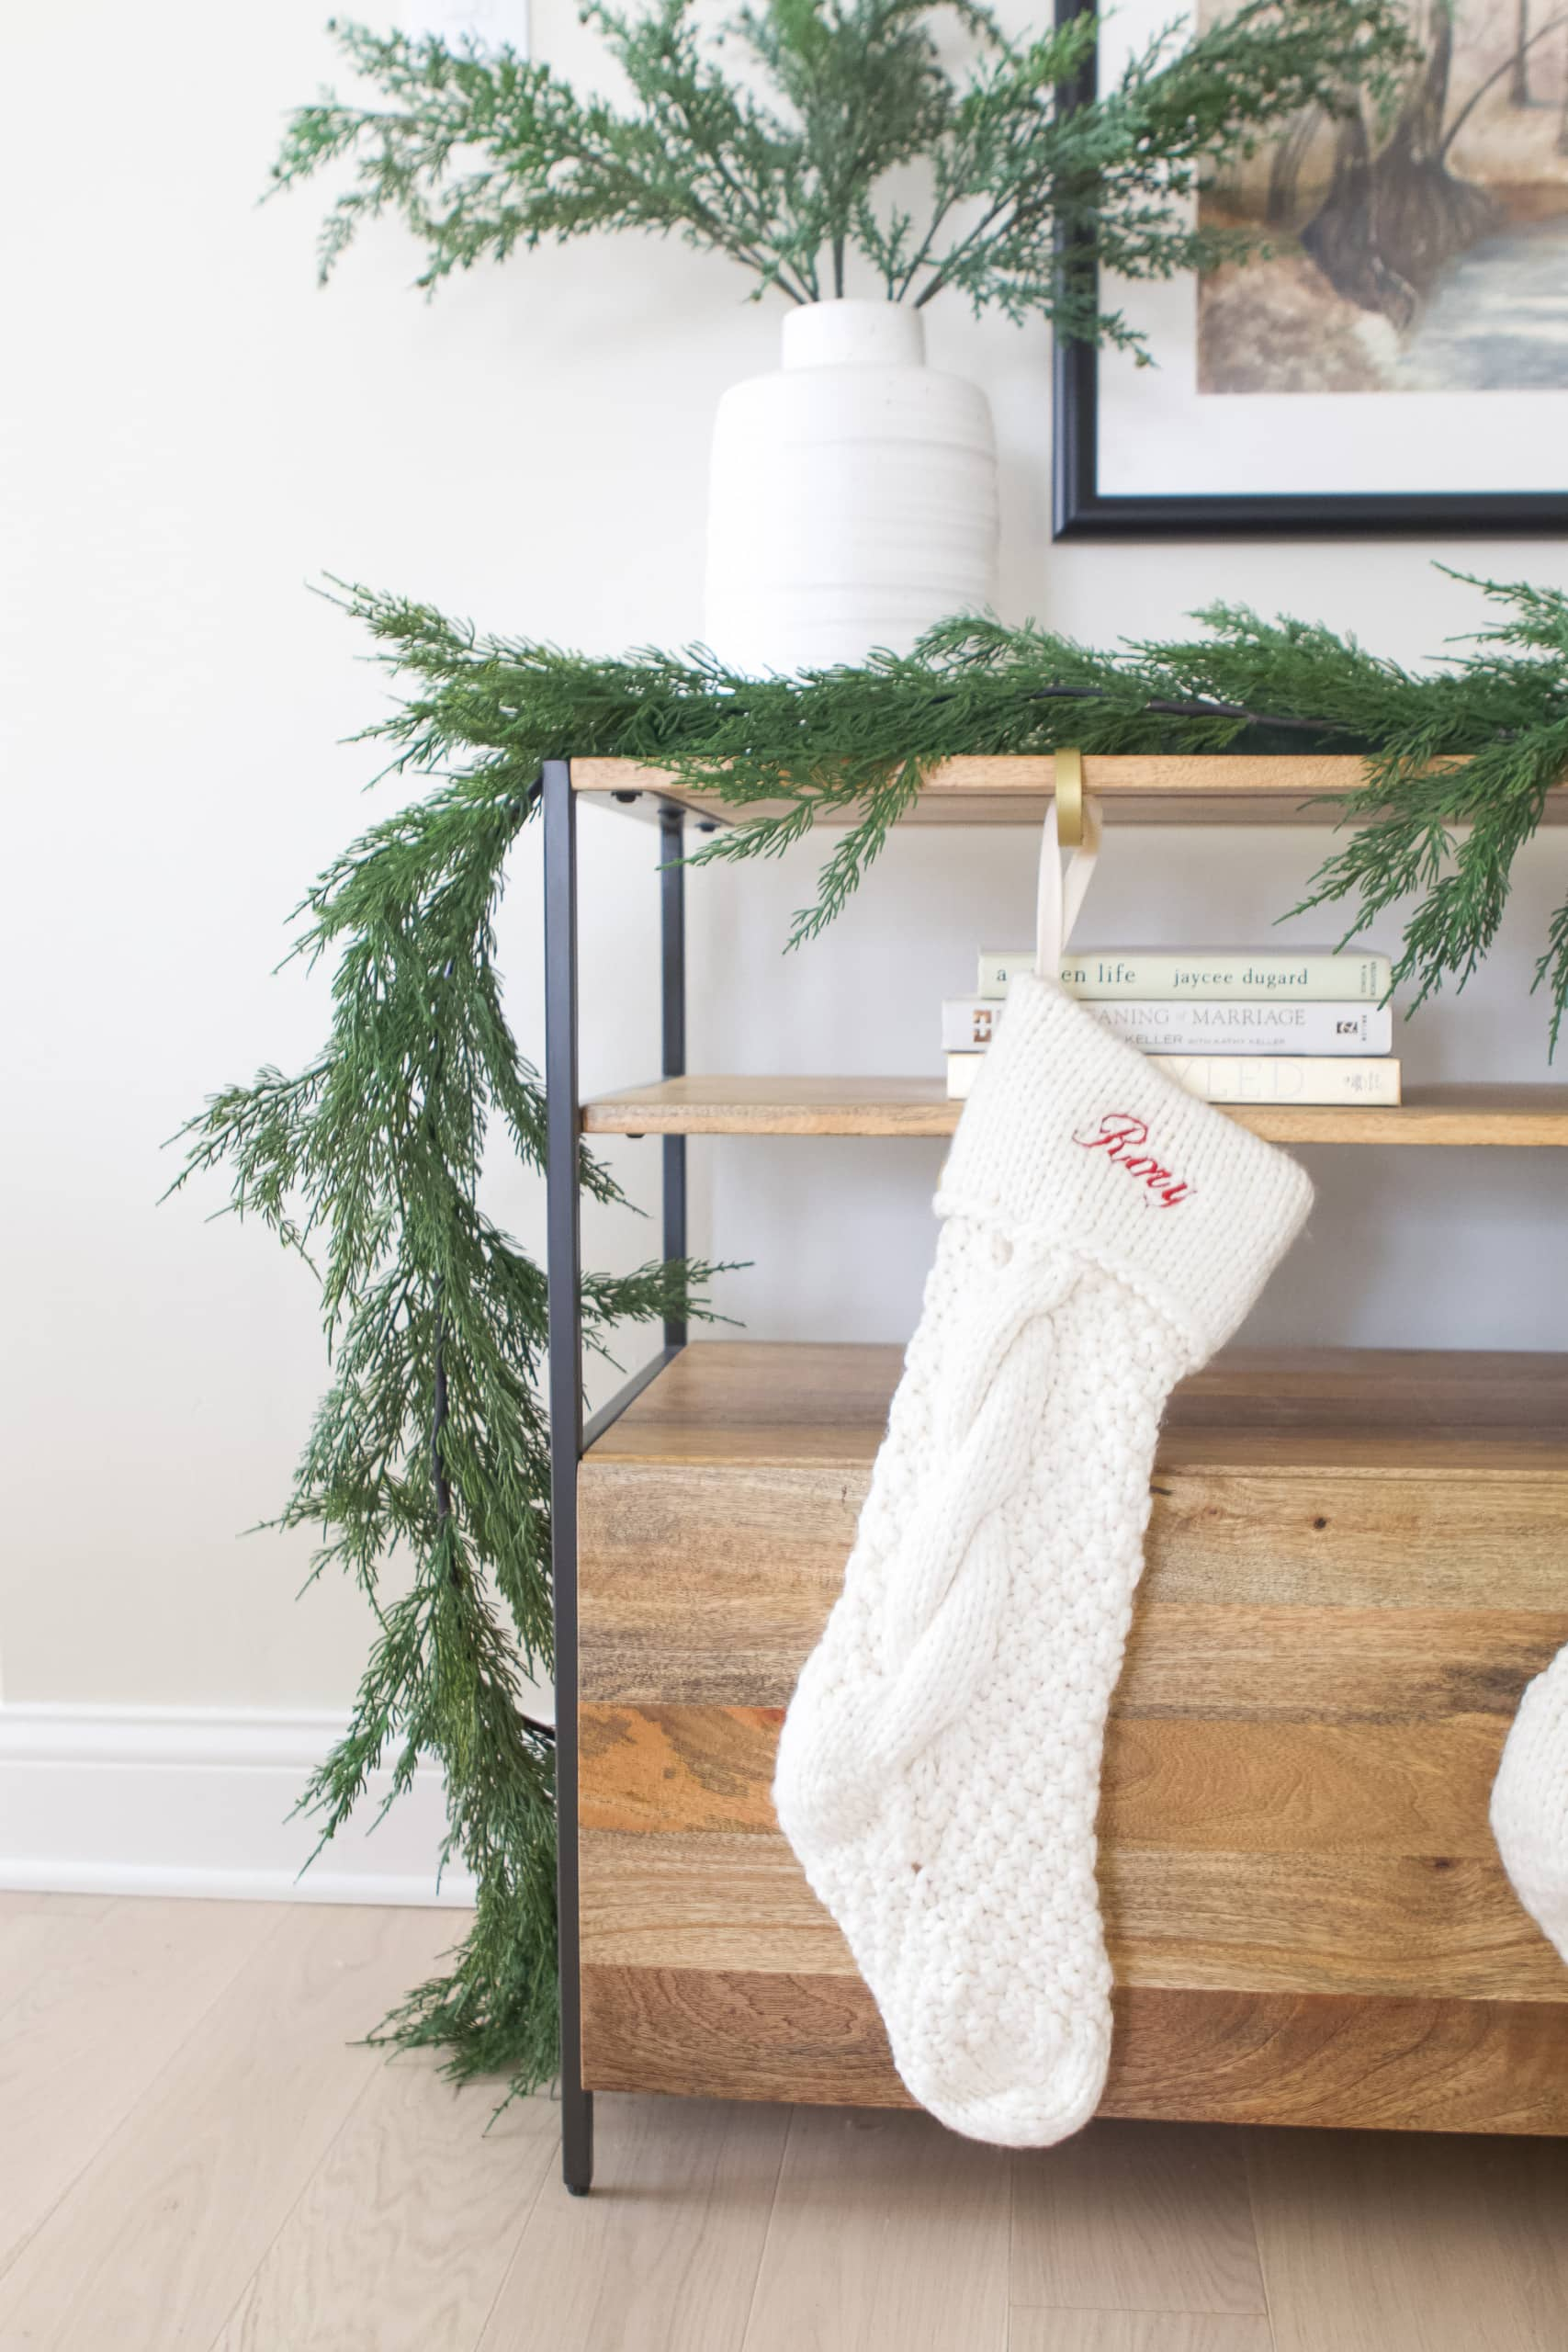 Rory's stocking hung on our entryway console